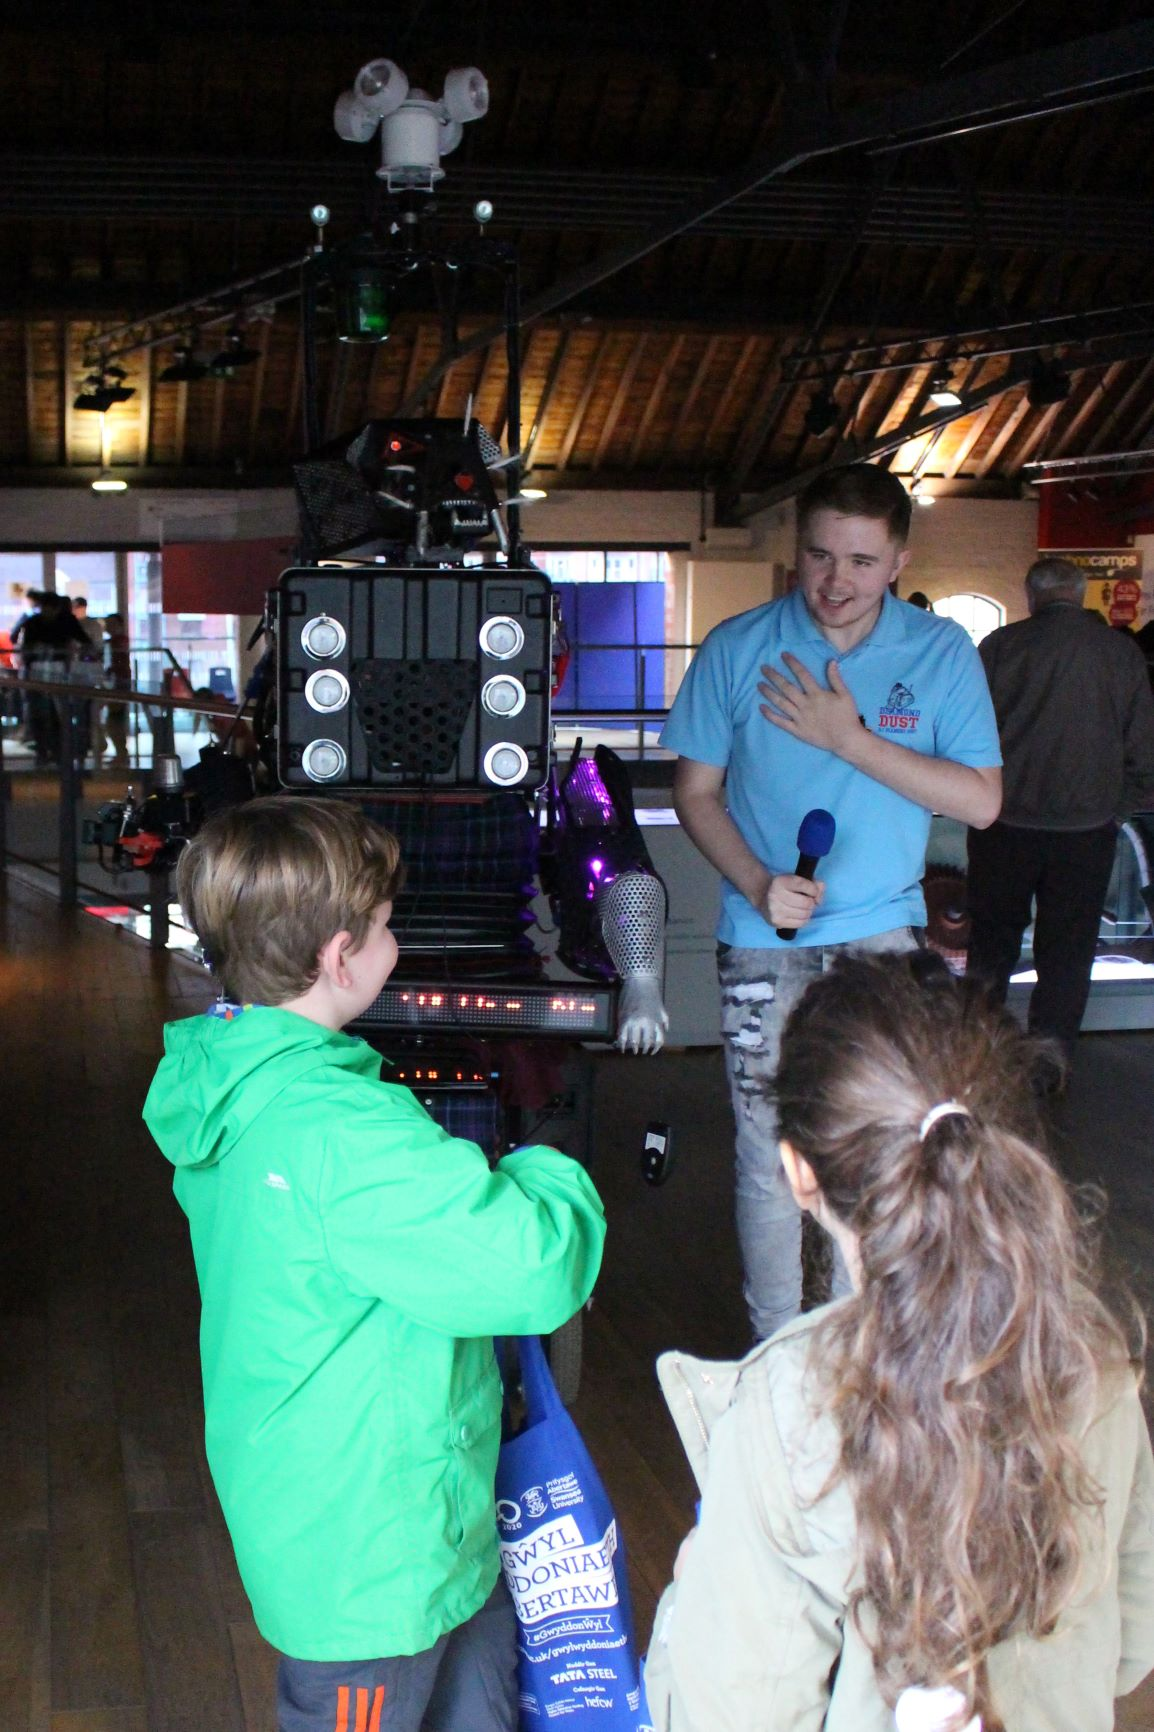 The 8 Foot Robot Cat with Roboteer Corey Perrett at the National Waterfront Museum with The Swansea Science Festival 2018